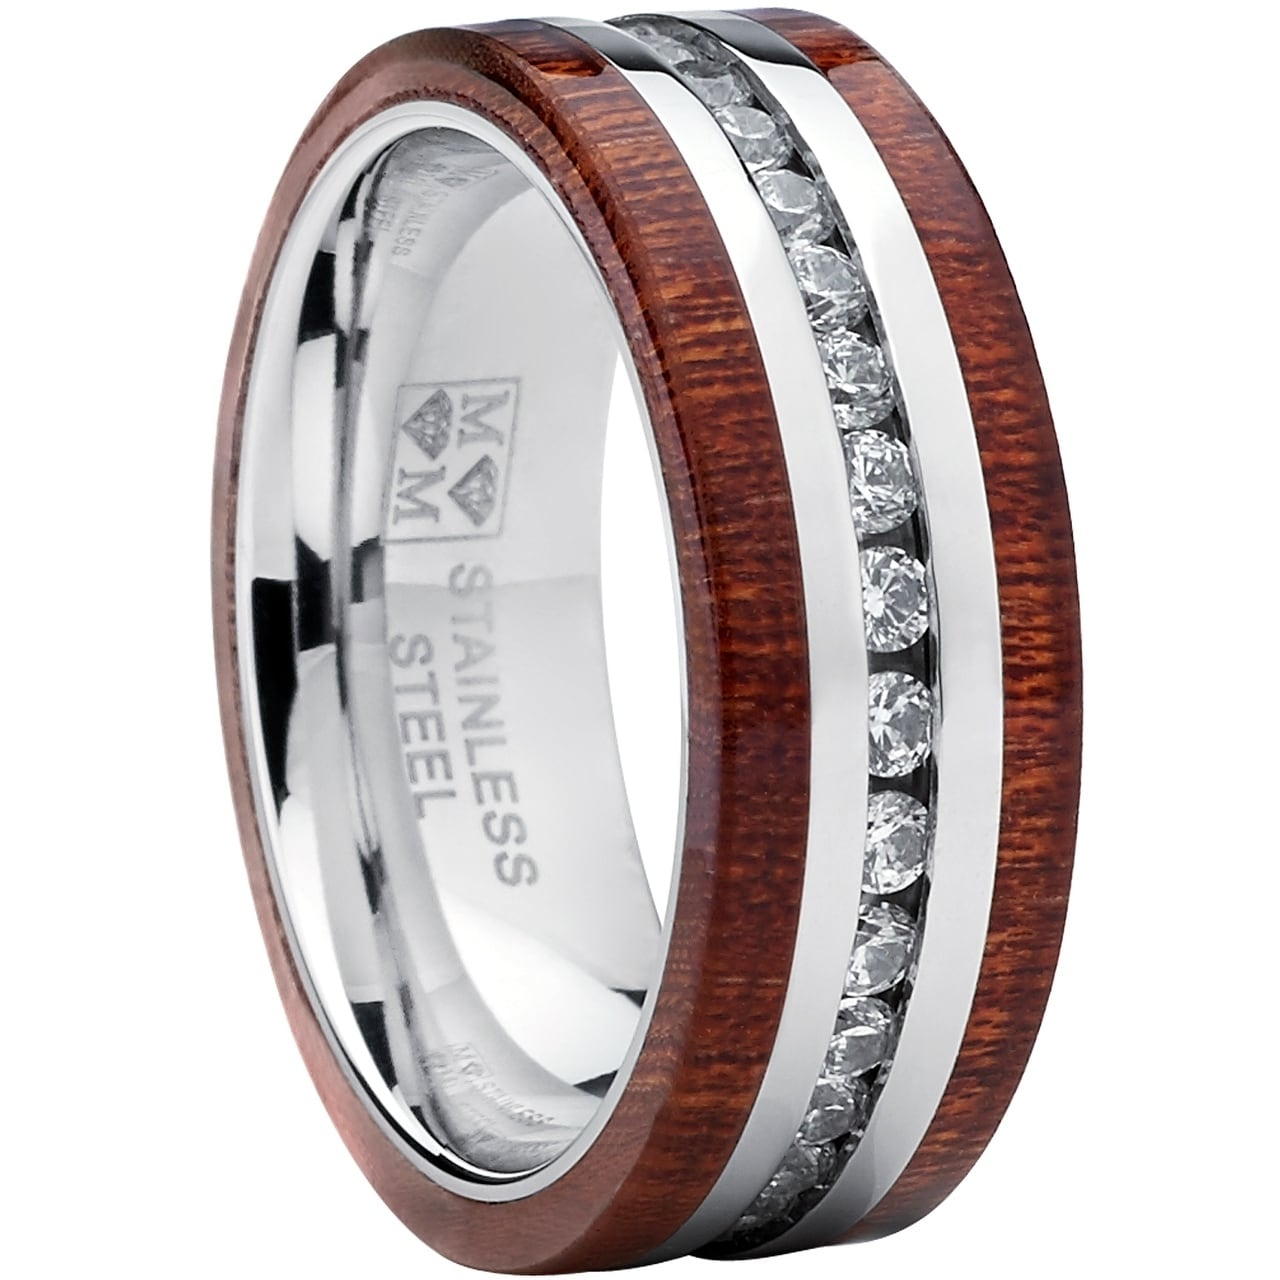 Oliveti Stainless Steel Eternity Cubic Zirconia And Wood Inlay Wedding Band Ring Free Shipping On Orders Over 45 23679414